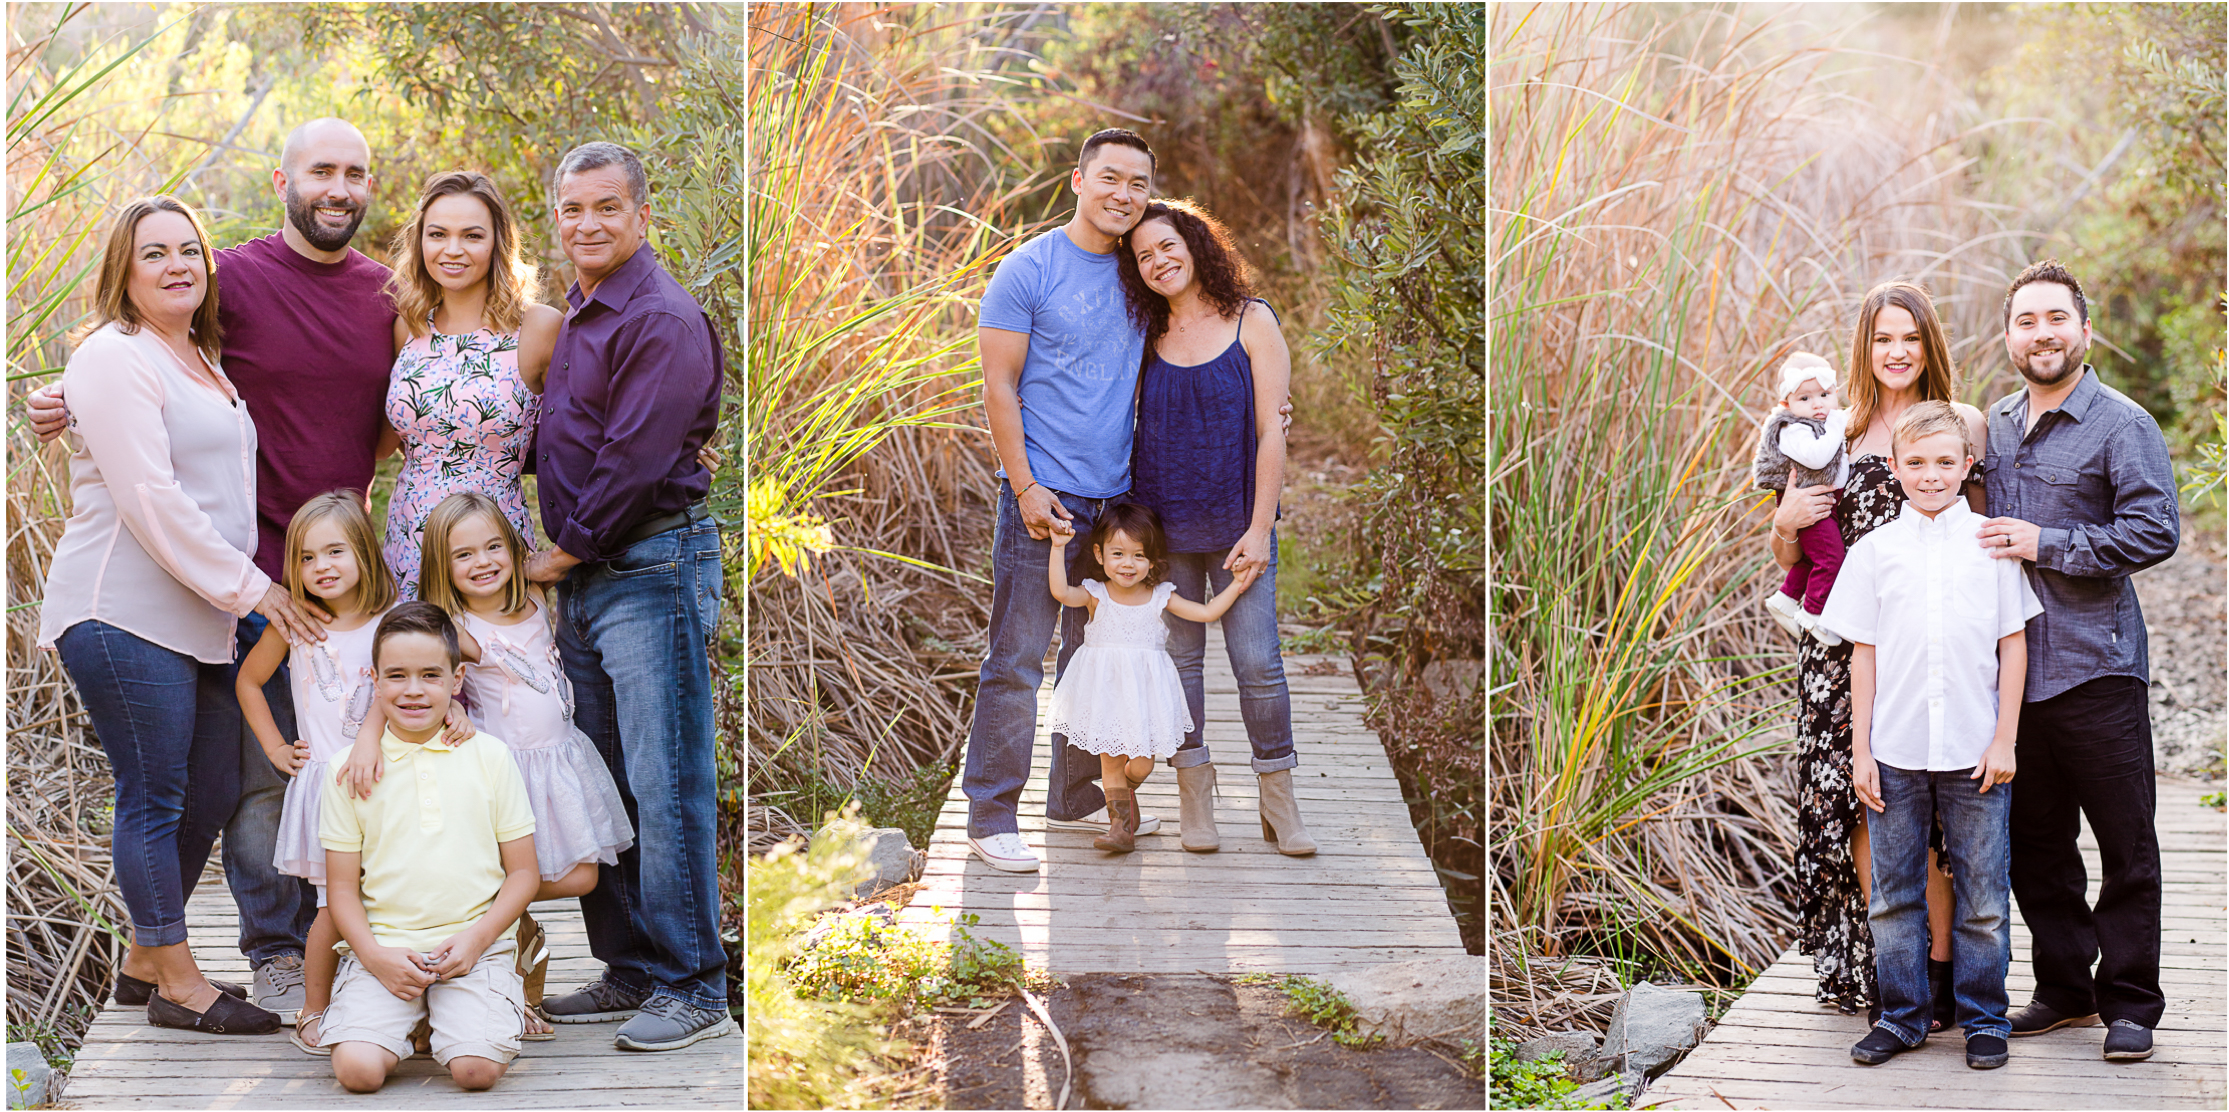 missiontrailsfamilyphotography1.jpg